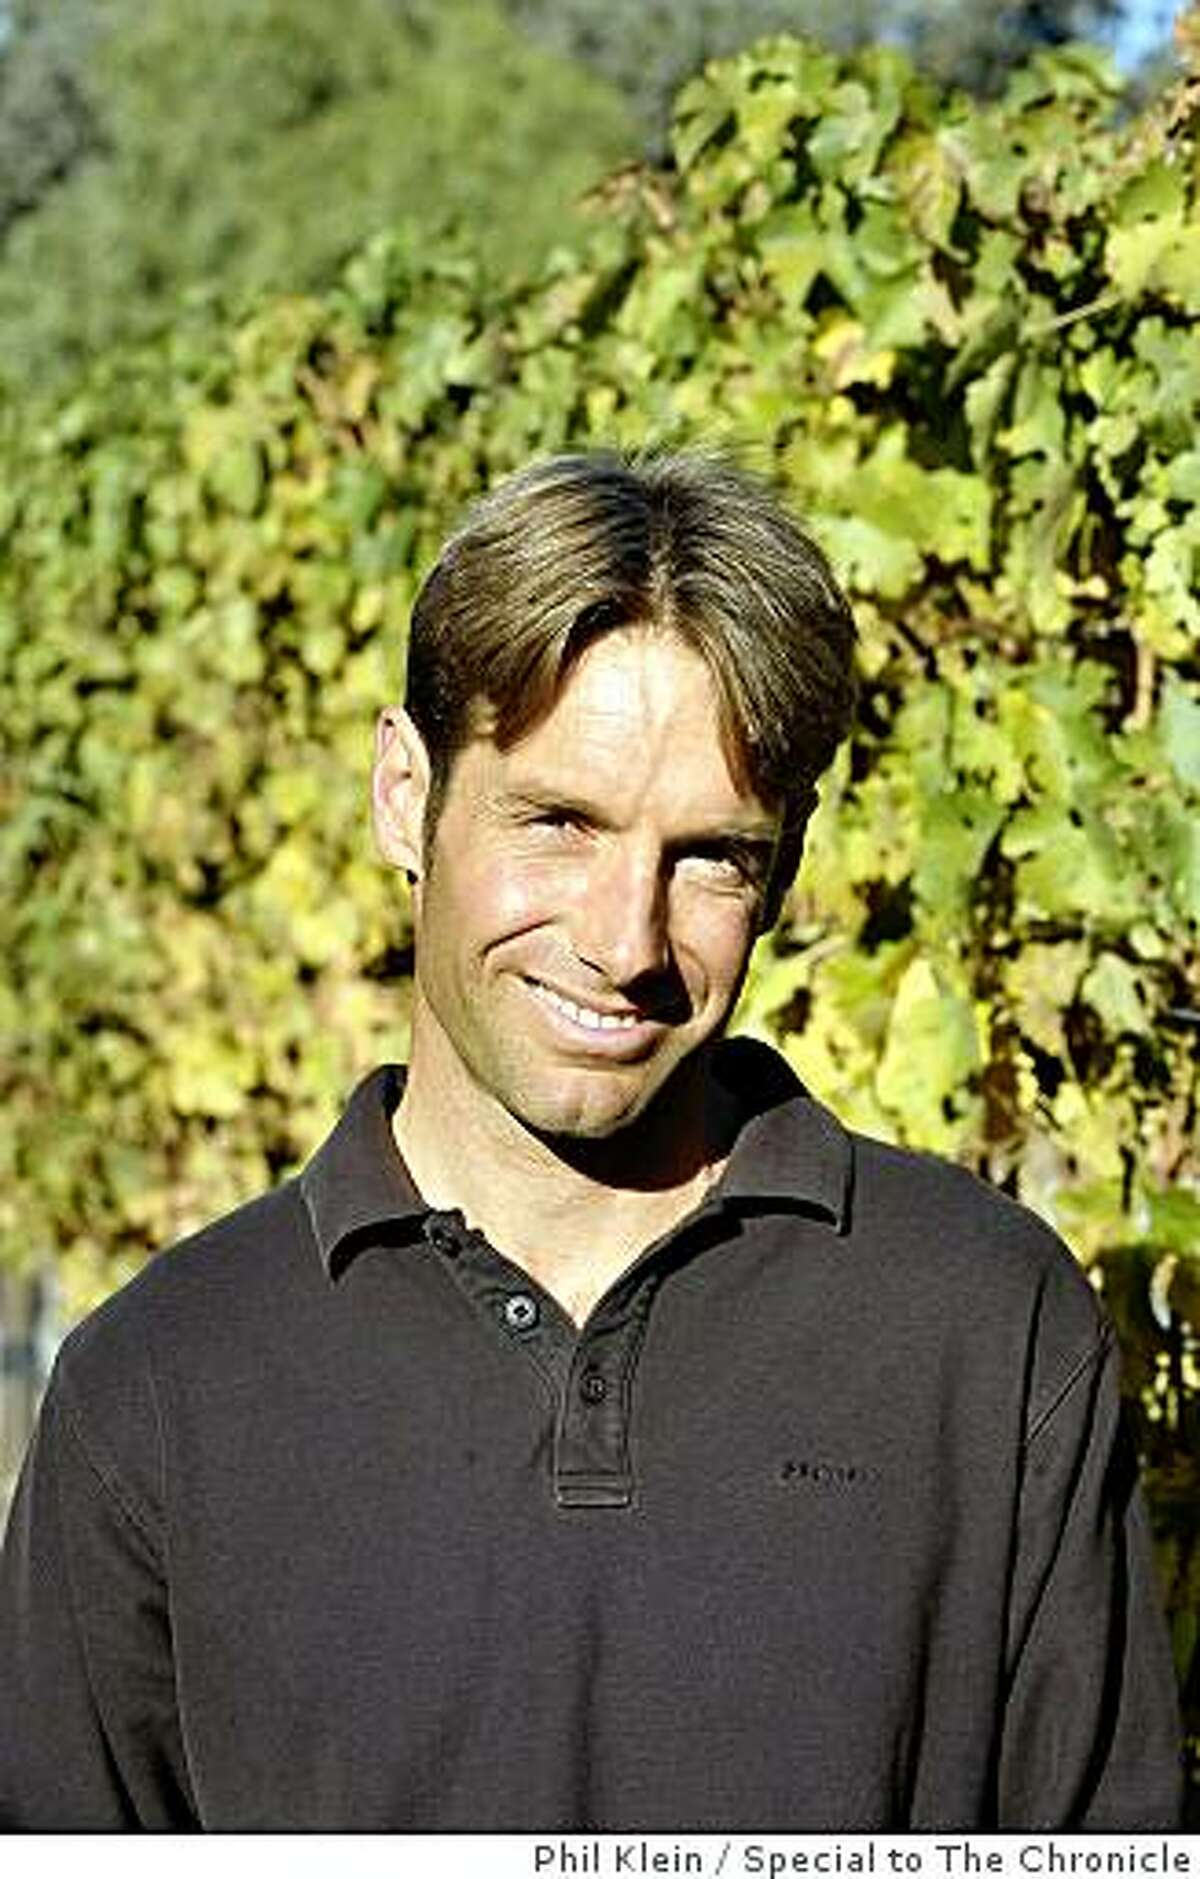 Winemaker Nick DeLuca poses for a photograph at the Star Lane vineyard in Santa Ynez on Tuesday, Dec. 9, 2008. Photo/Phil Klein